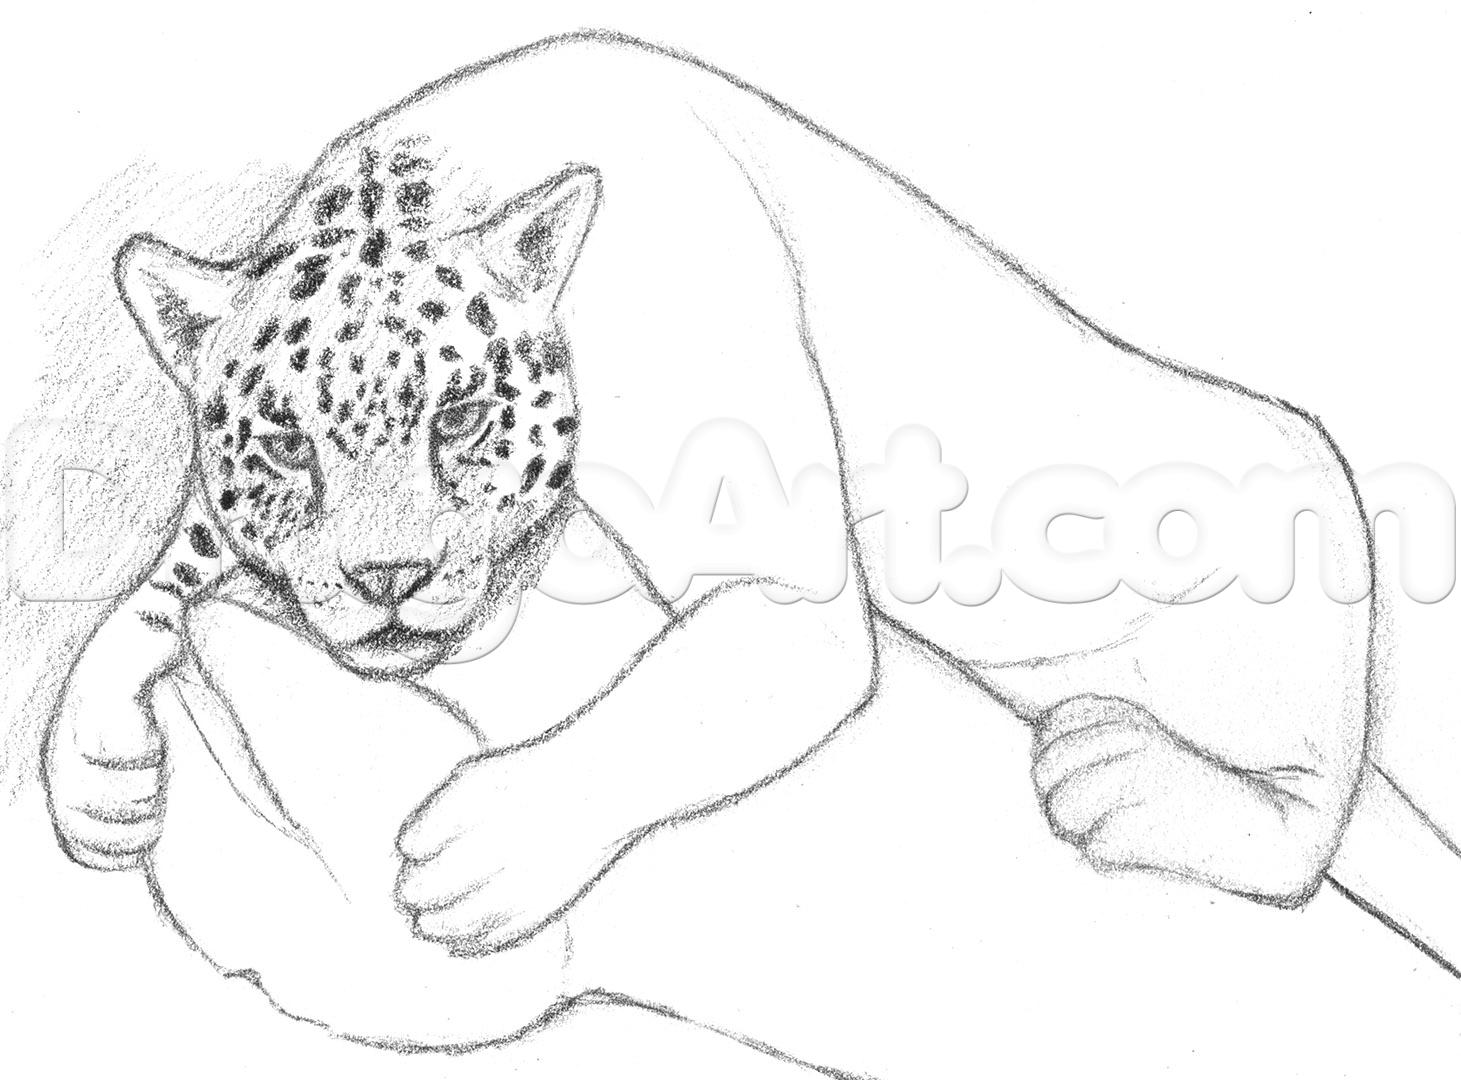 Drawn jaguar rainforest animal By By drawing Step Step